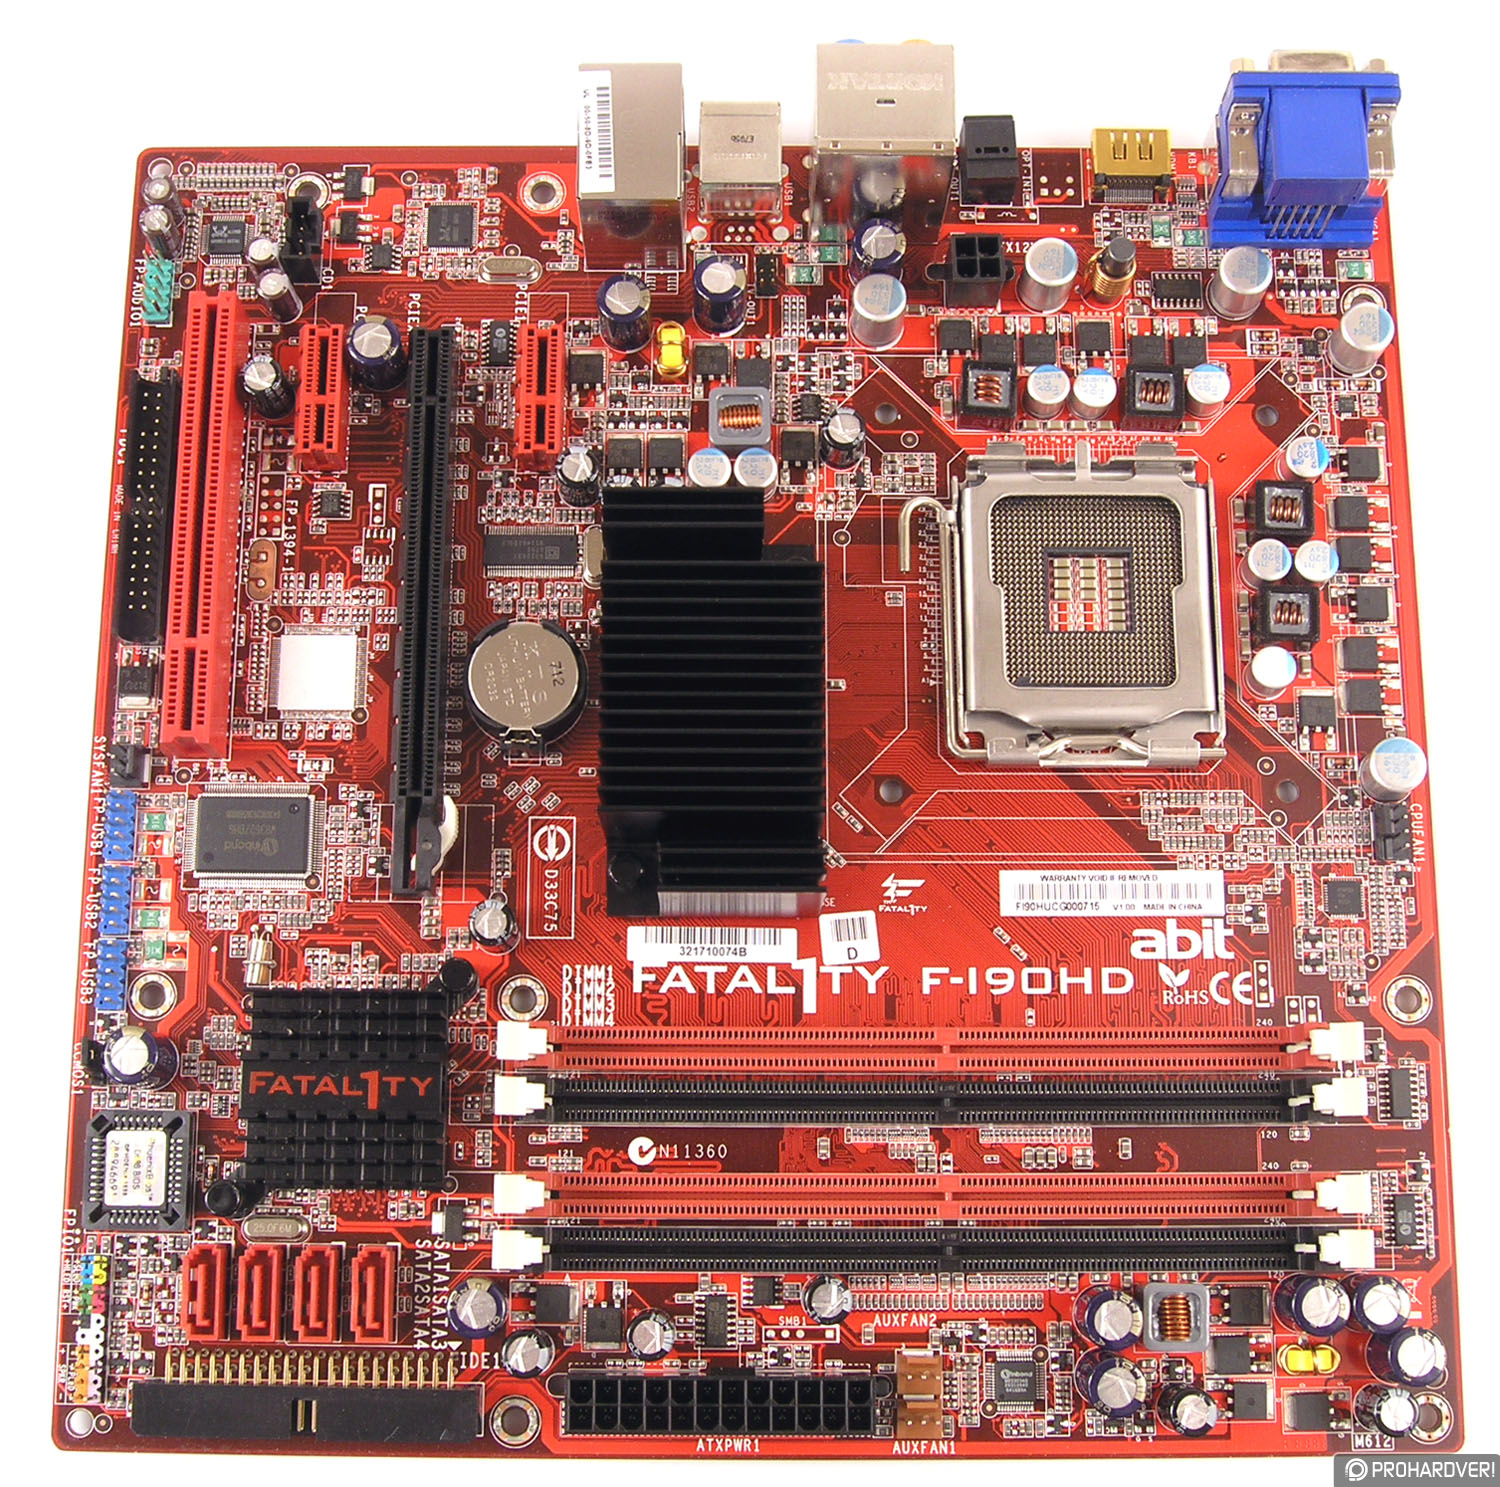 List of ATI chipsets